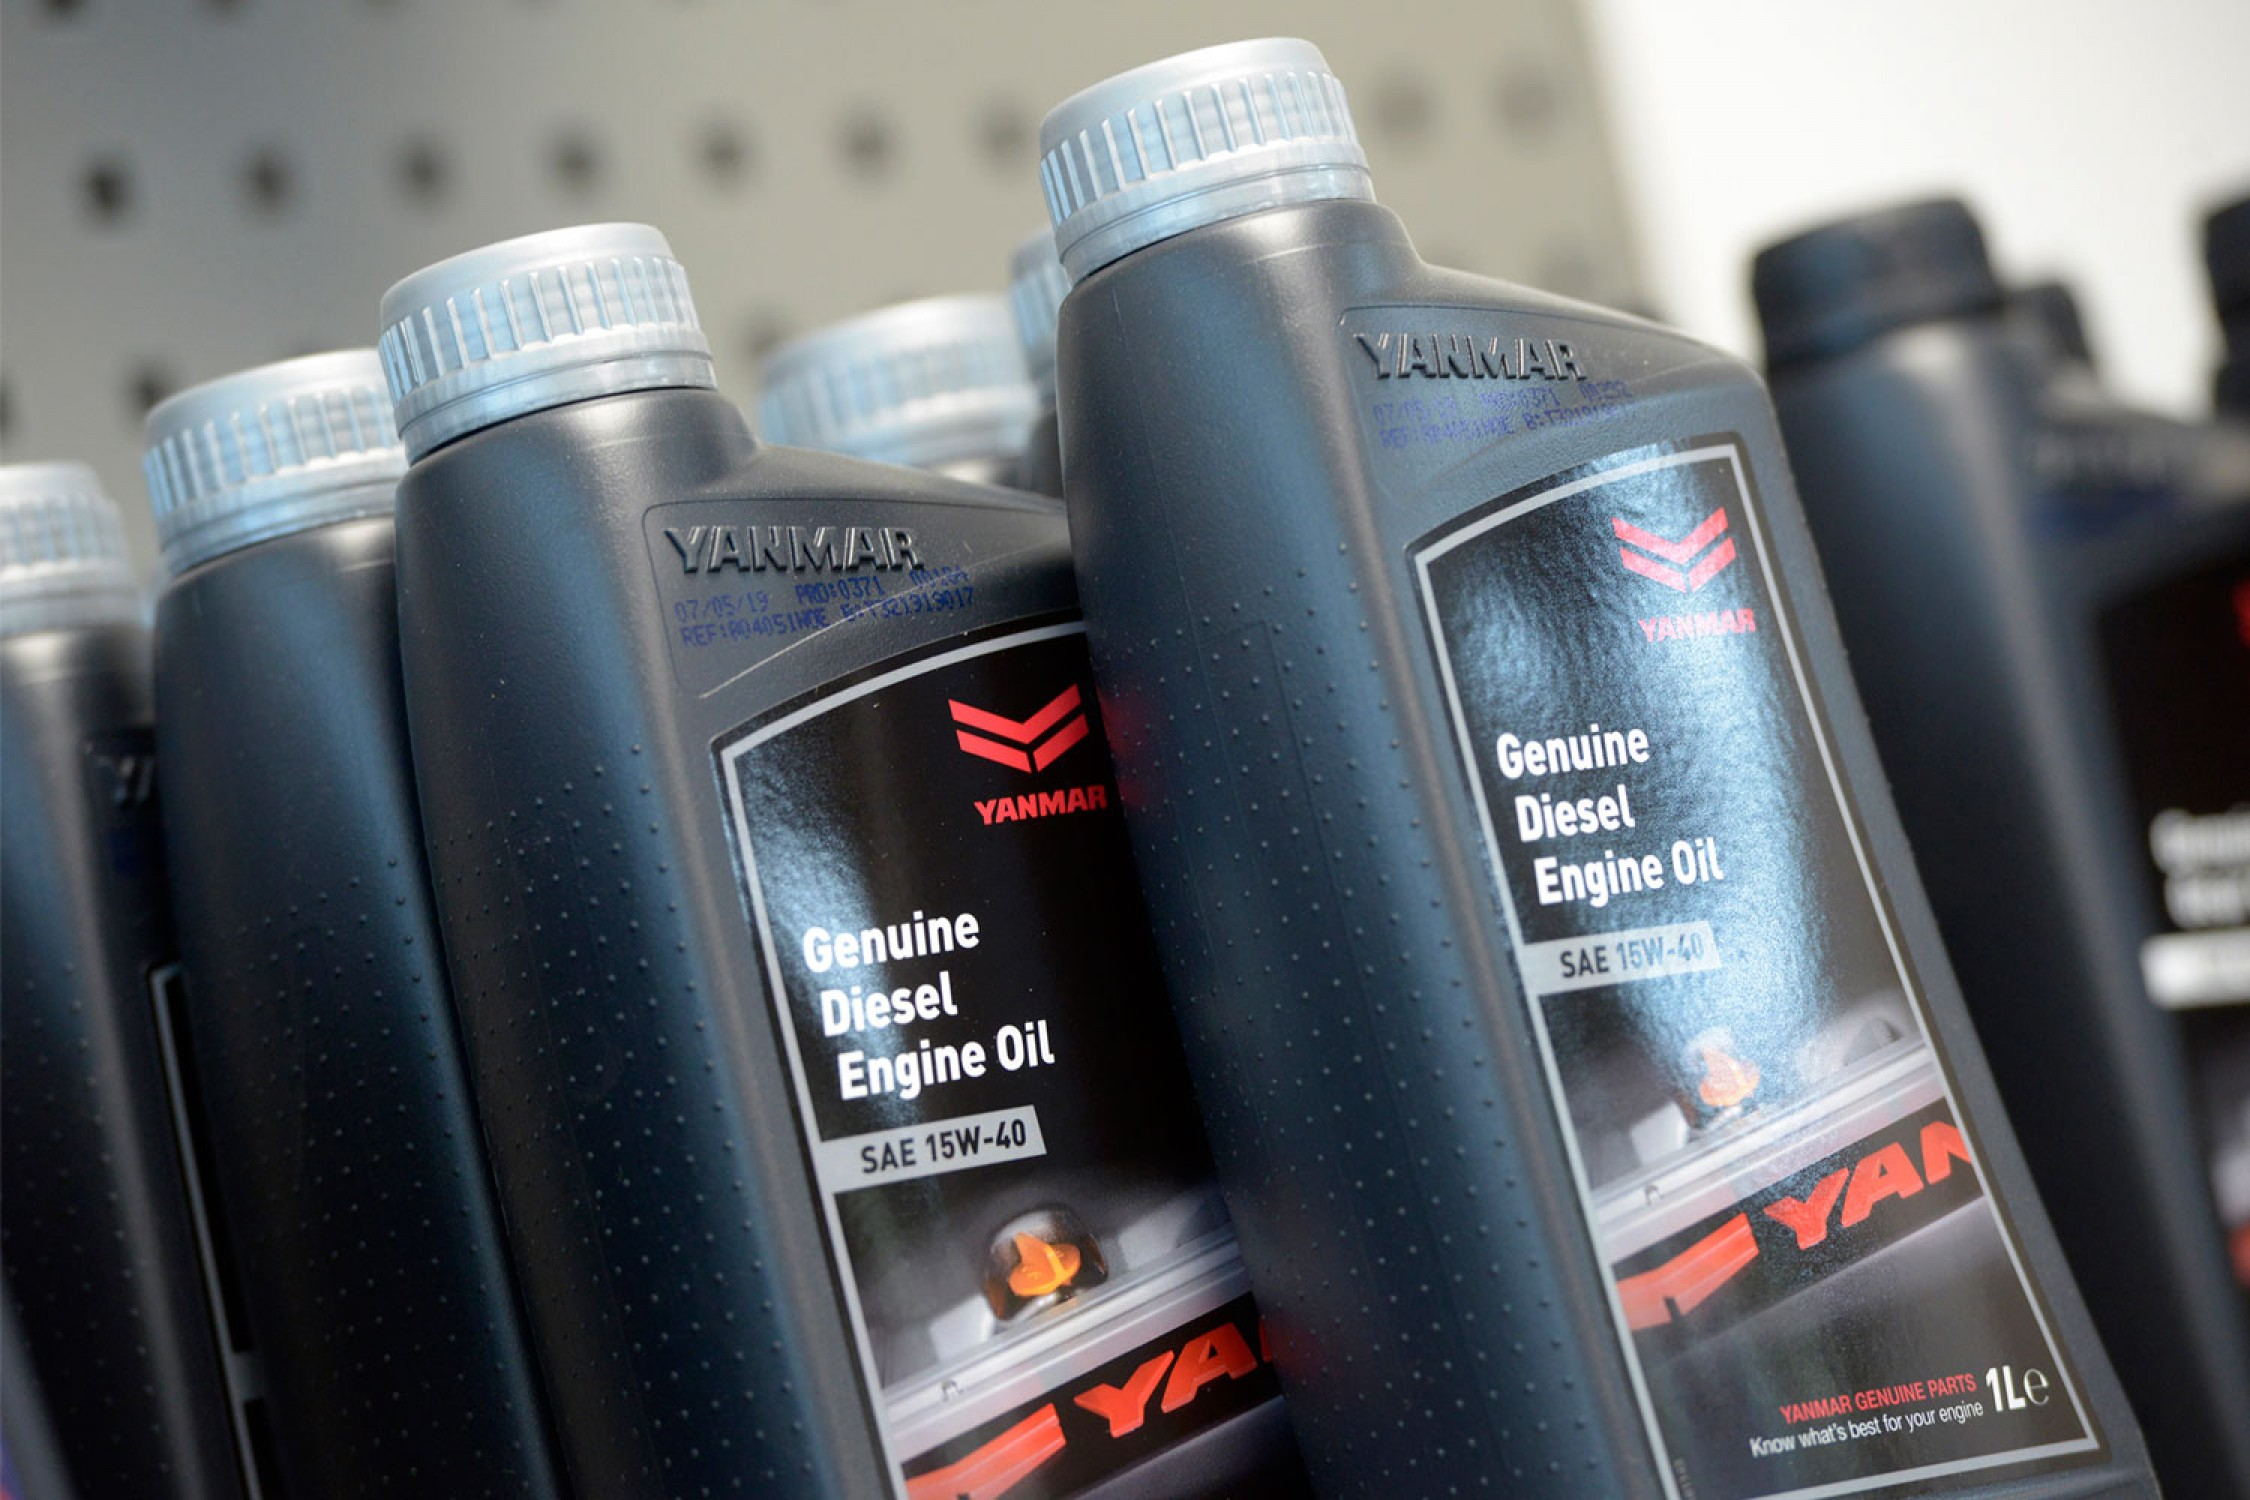 5.0% July discount on oil and filters